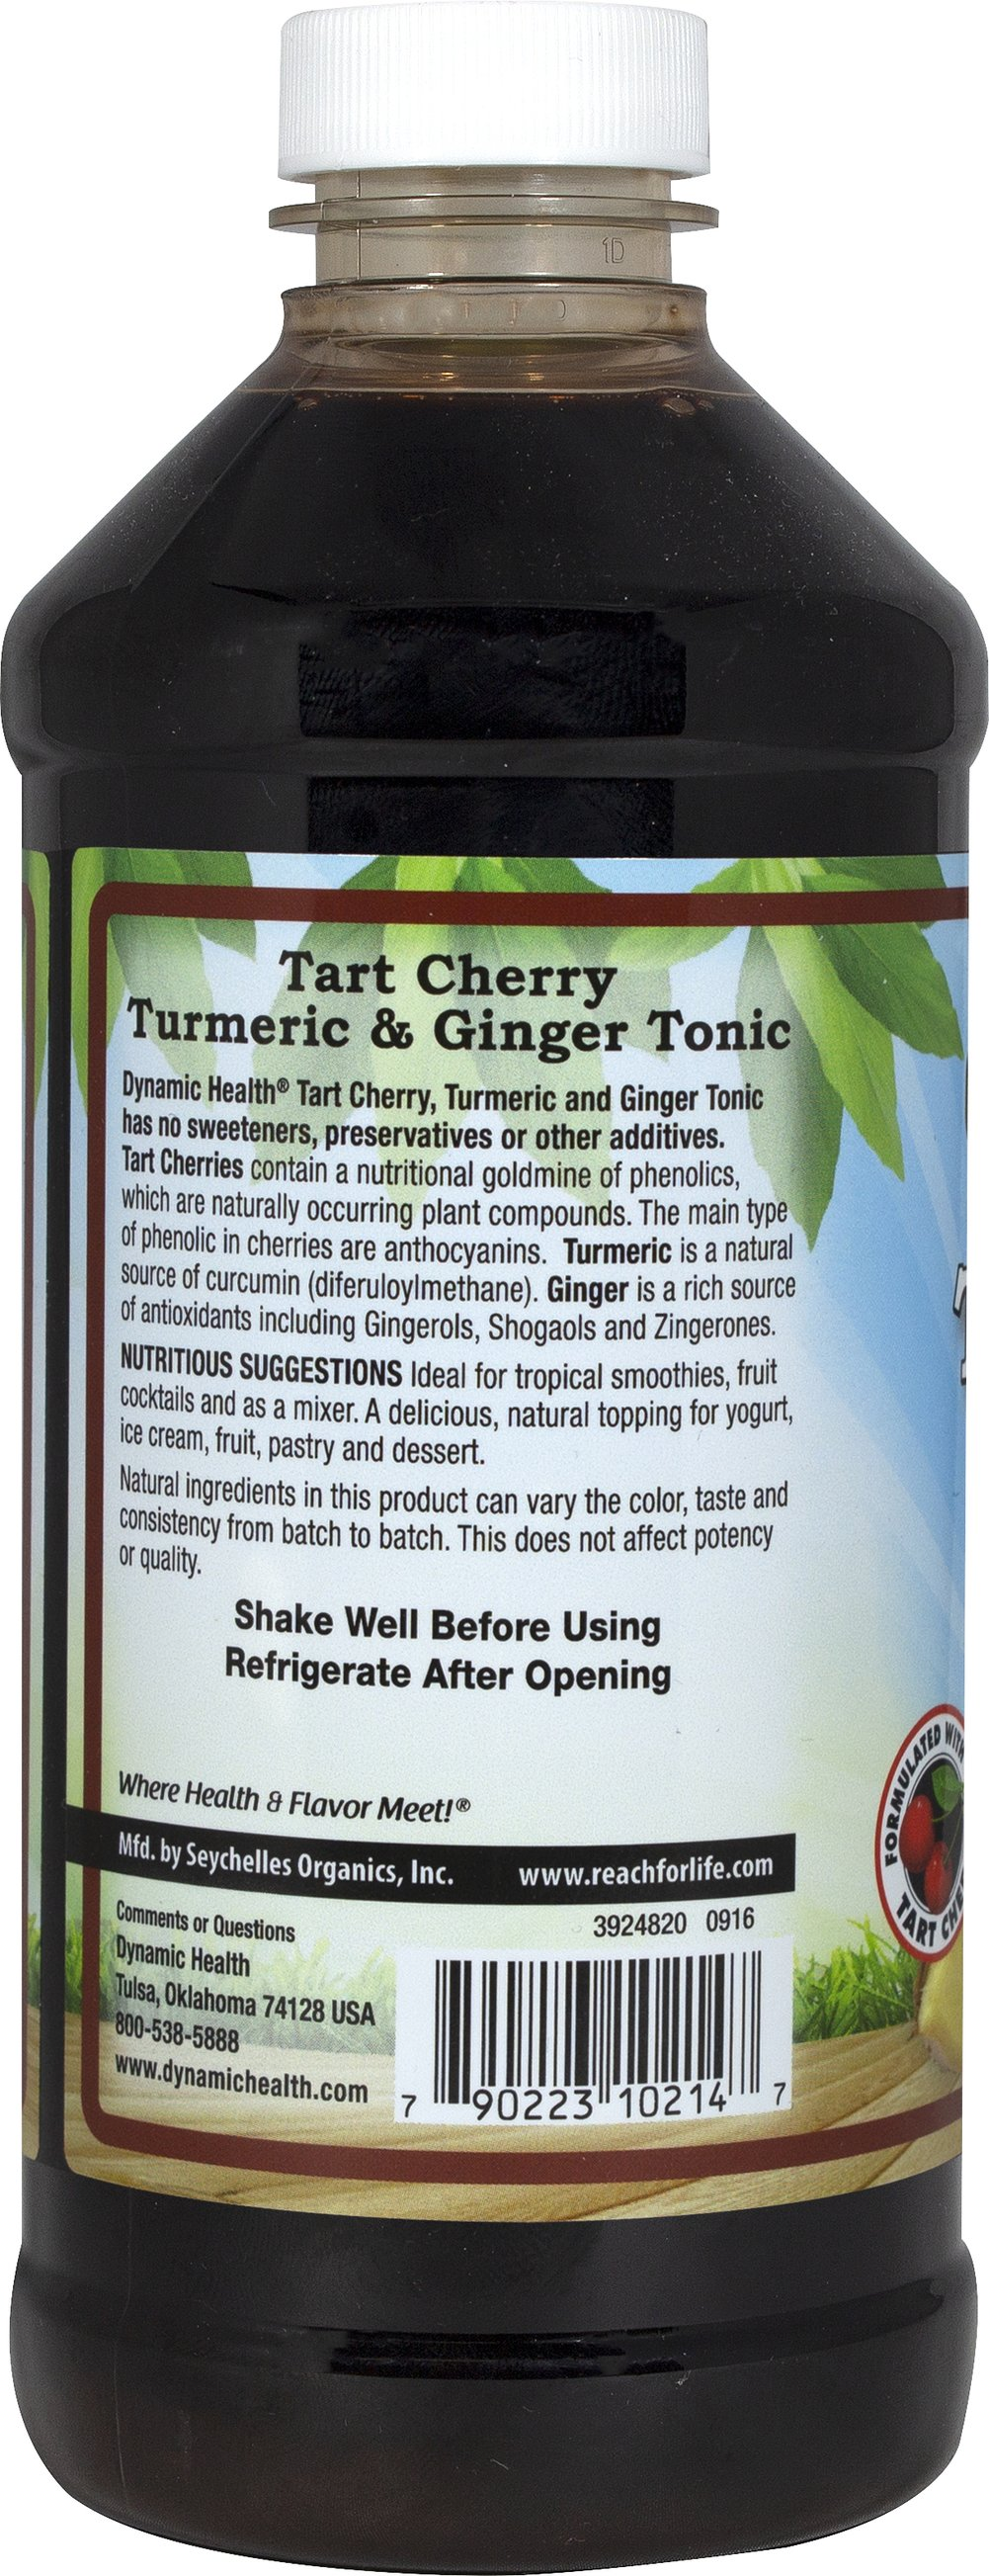 Organic Tart Cherry, Turmeric & Ginger Tonic Thumbnail Alternate Bottle View